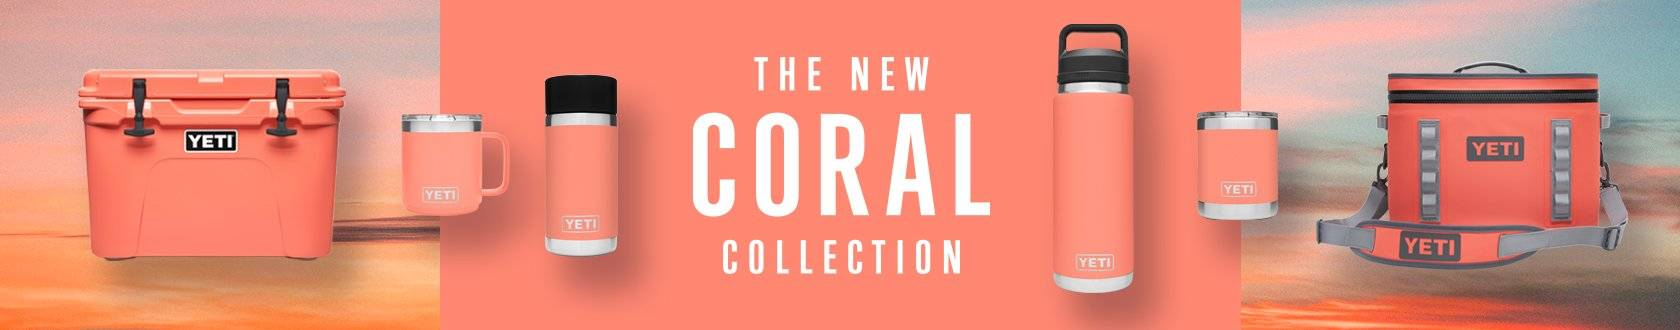 The New Coral Collection